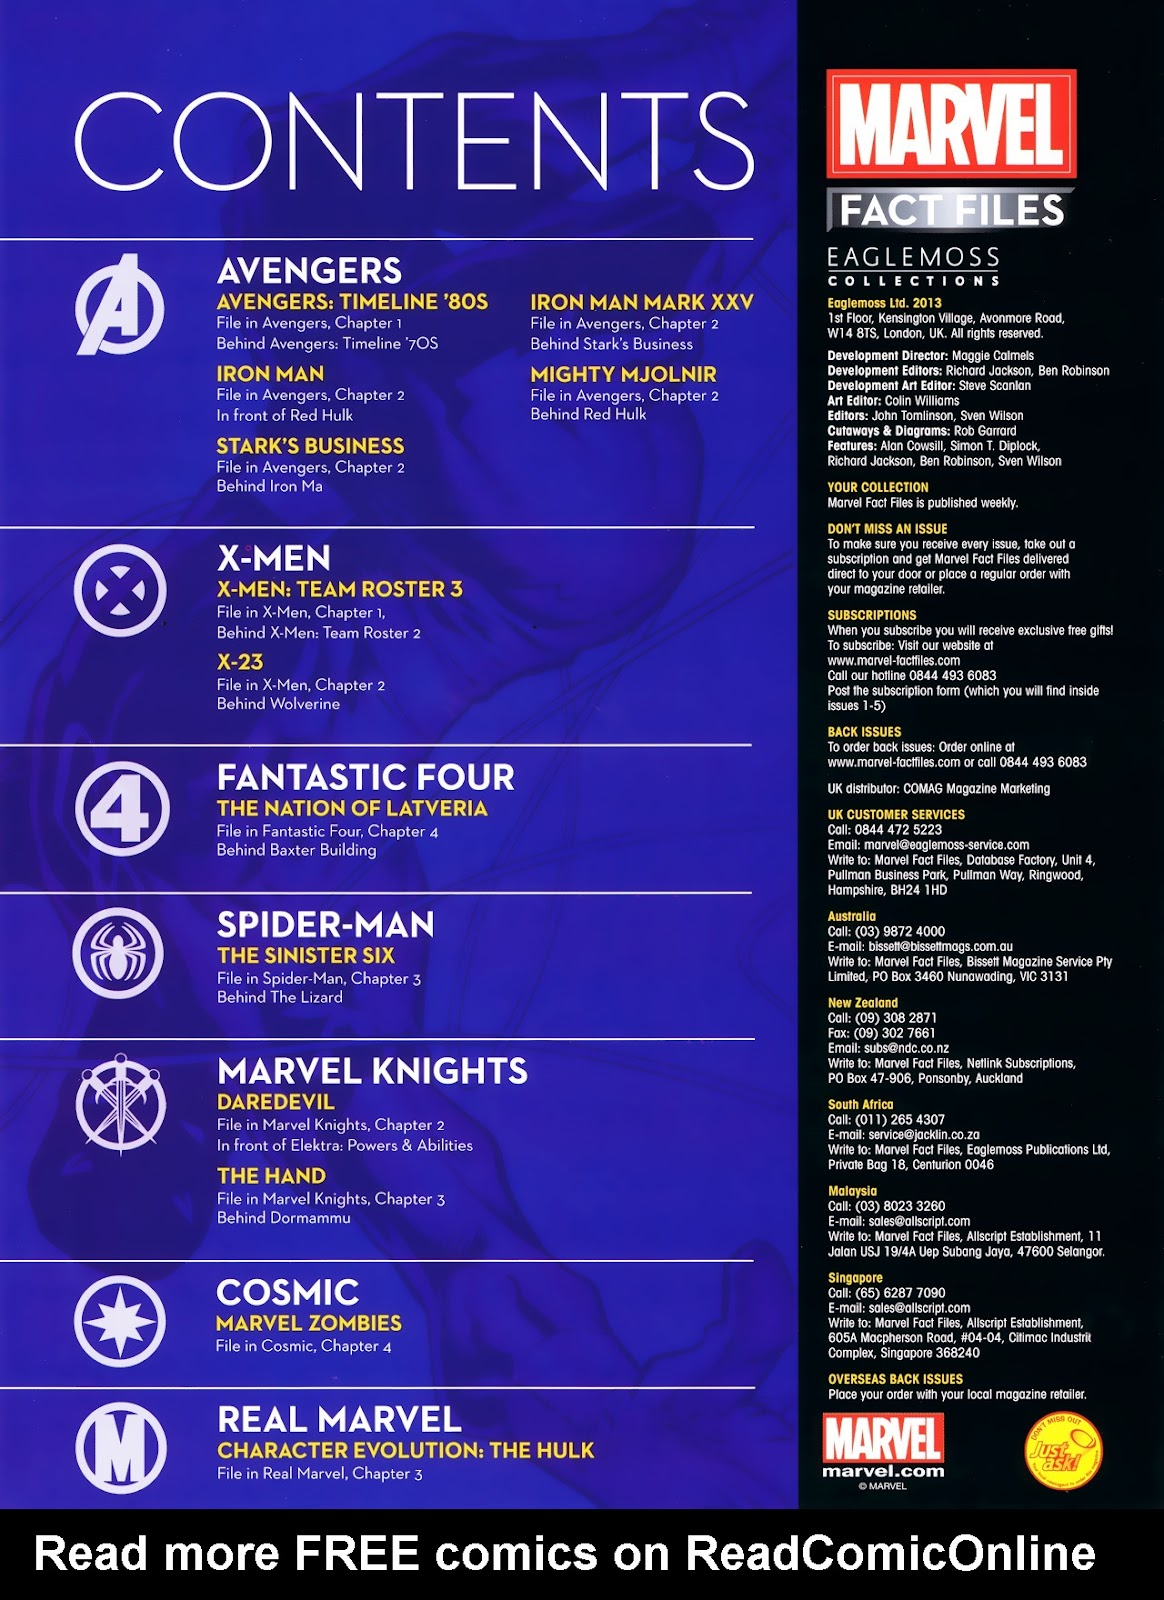 Comic Marvel Fact Files issue 4